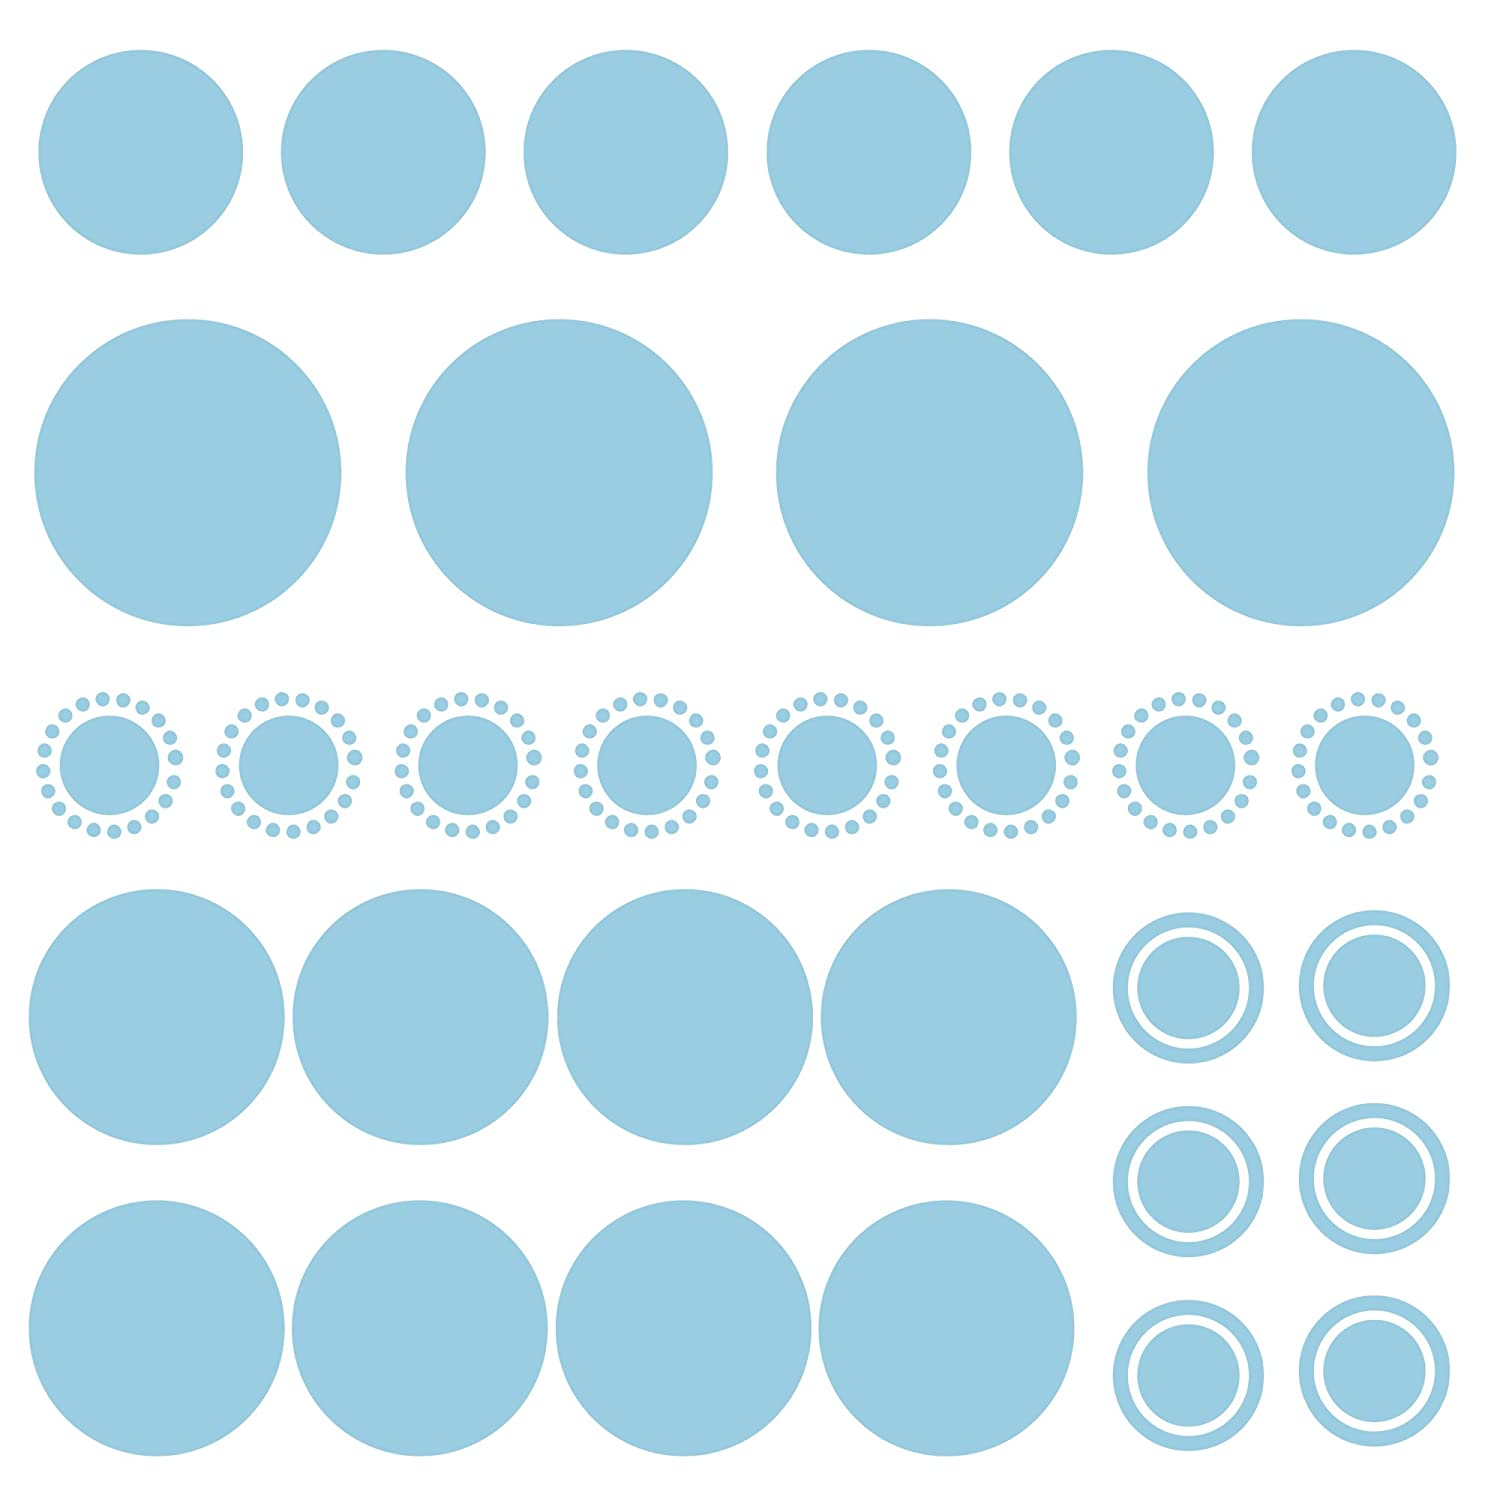 Bobee Polka Dot Wall Decals Peel And Stick Confetti Wall Stickers, Light  Blue   Baby Products   Amazon.com